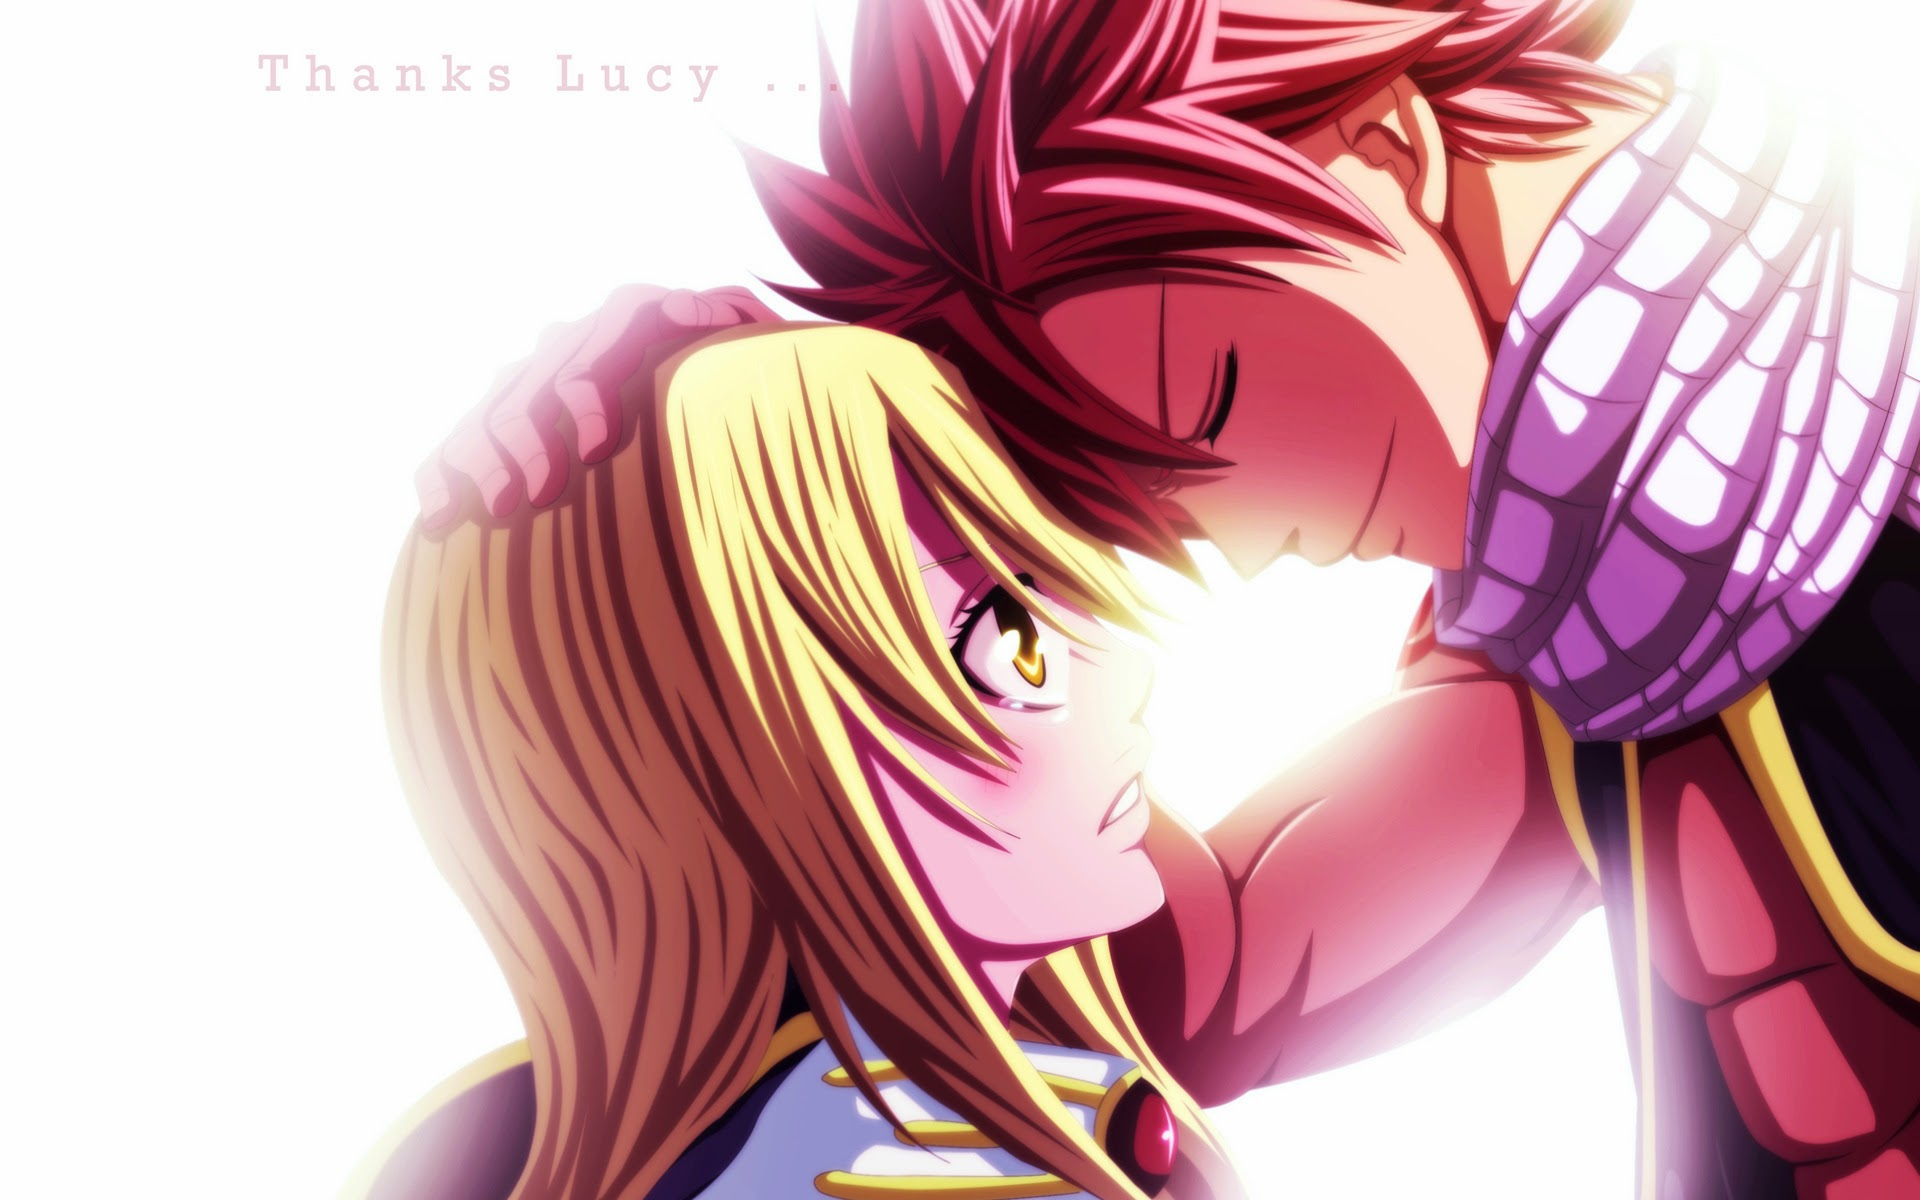 Lucy Natsu Fairy Tail Hd Wallpaper 19201200 4a Anime